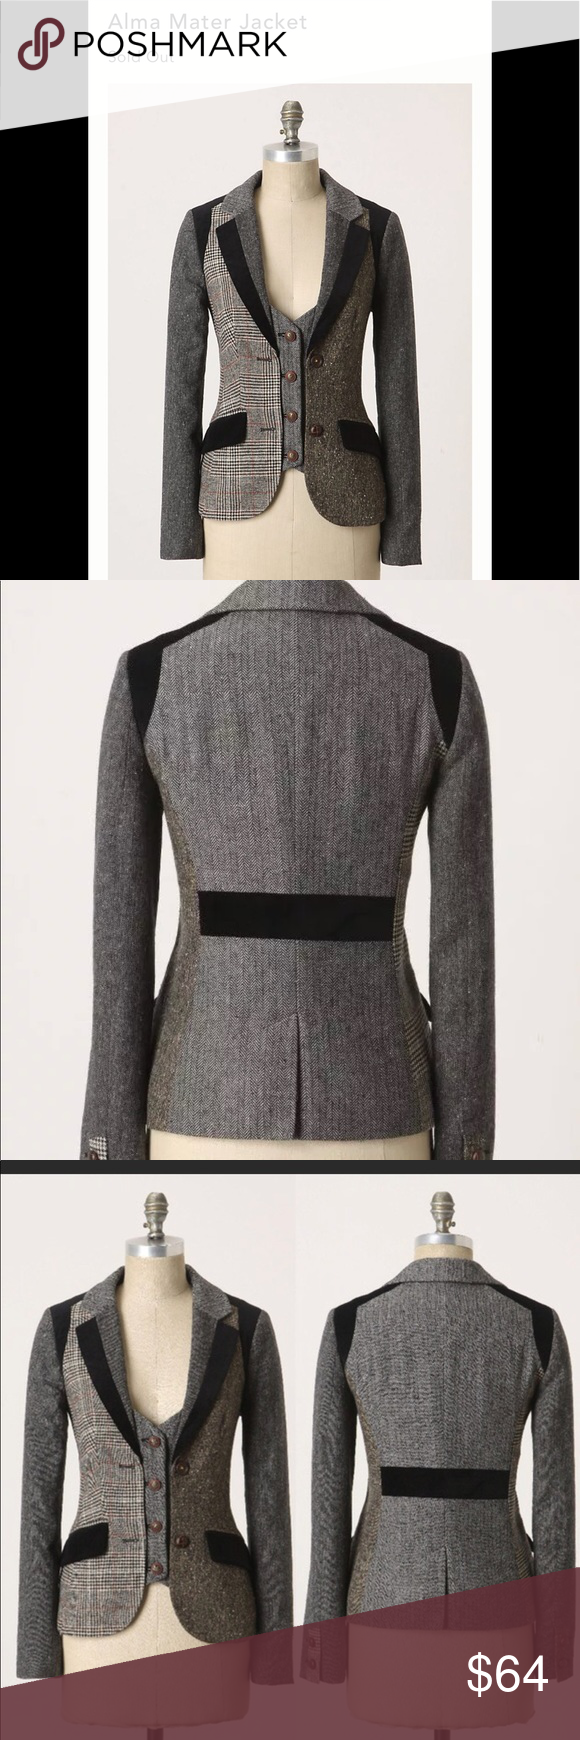 Cartonnier Alma Mater Blazer Sz L Anthropologie | My Posh